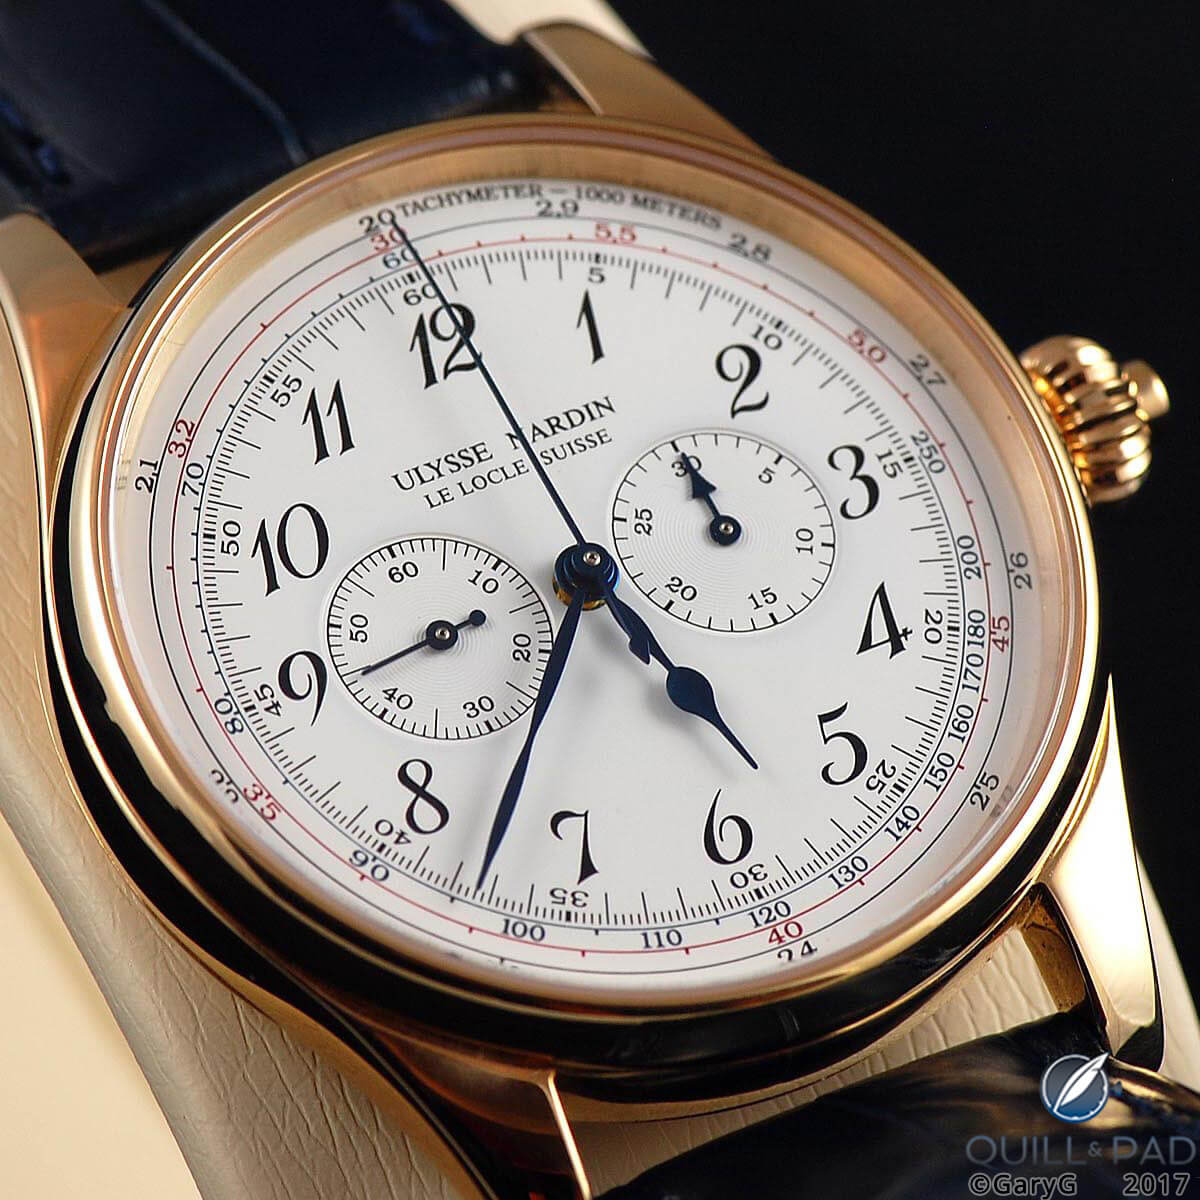 Gone but not forgotten: Ulysse Nardin Monopusher Chronograph